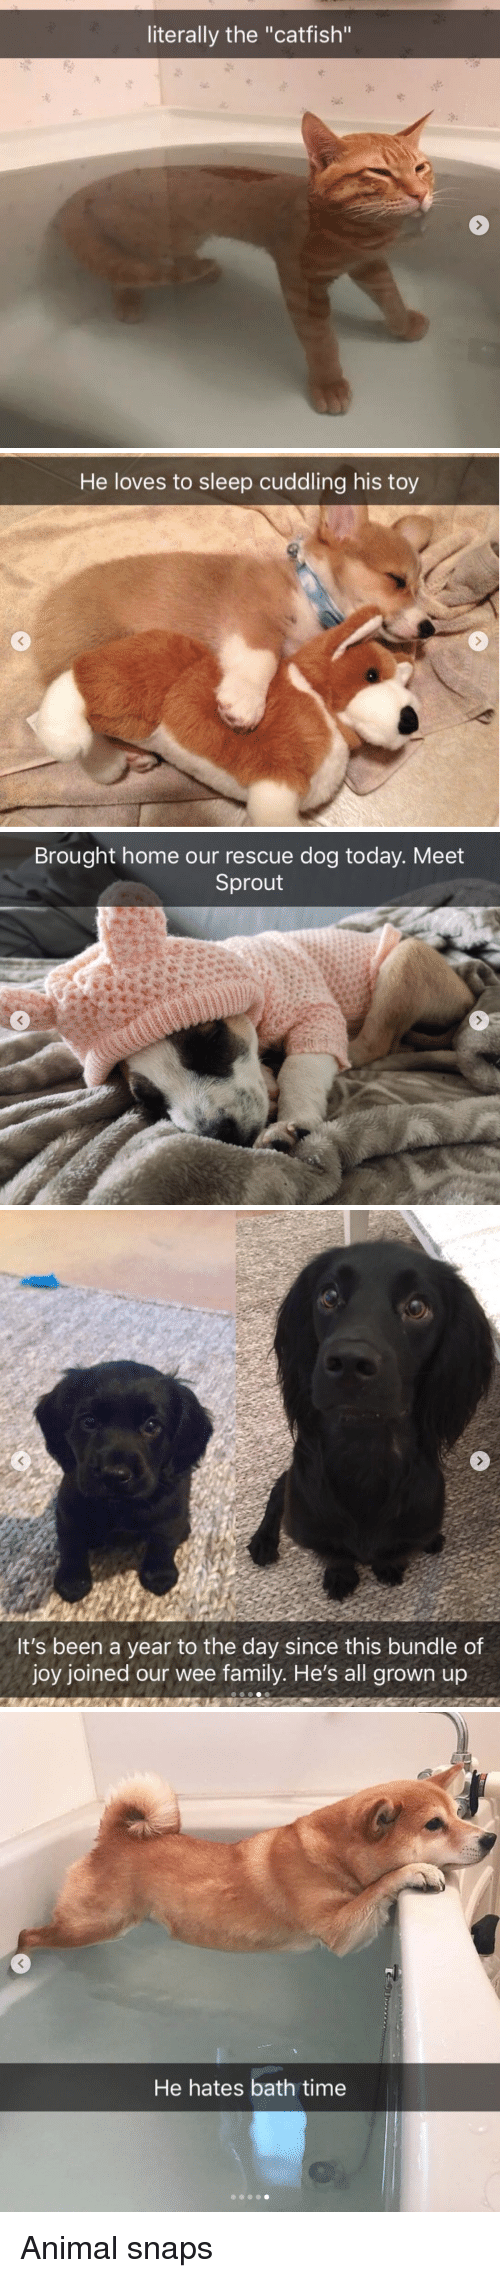 """all grown up: literally the """"catfish""""   He loves to sleep cuddling his toy   Brought home our rescue dog today. Meet  Sprout   It's been a year to the day since this bundle of  joy joined our wee family. He's all grown up   He hates bath time Animal snaps"""